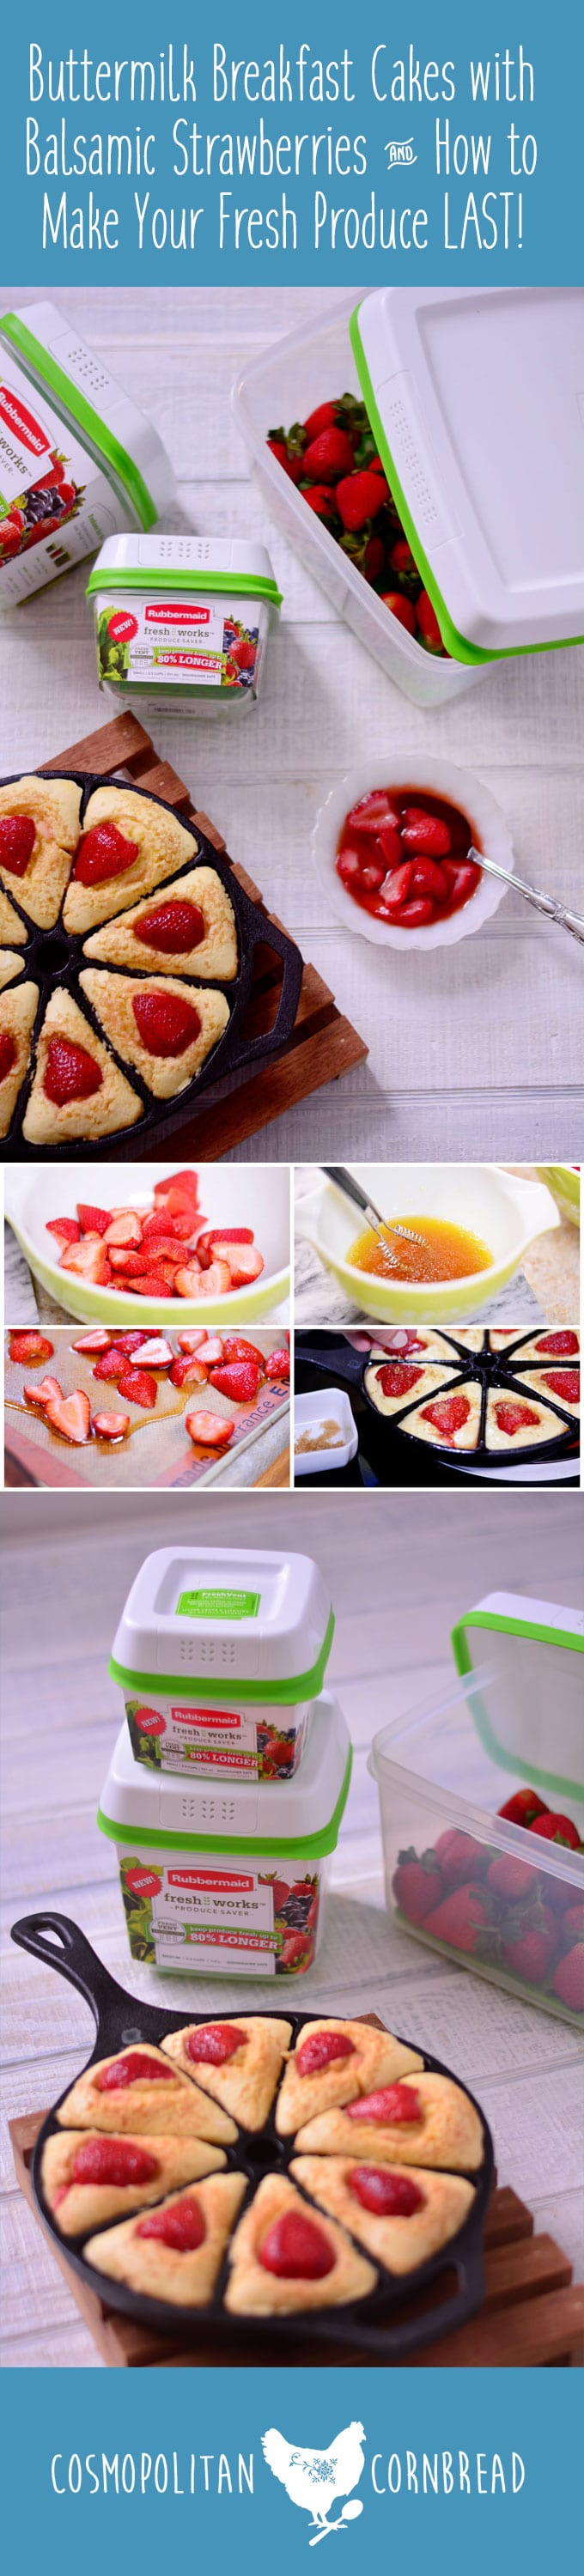 Buttermilk Breakfast Cakes with Balsamic Strawberries & How to make your fresh produce LAST with Rubbermaid FreshWorks & a Giveaway | Cosmopolitan Cornbread